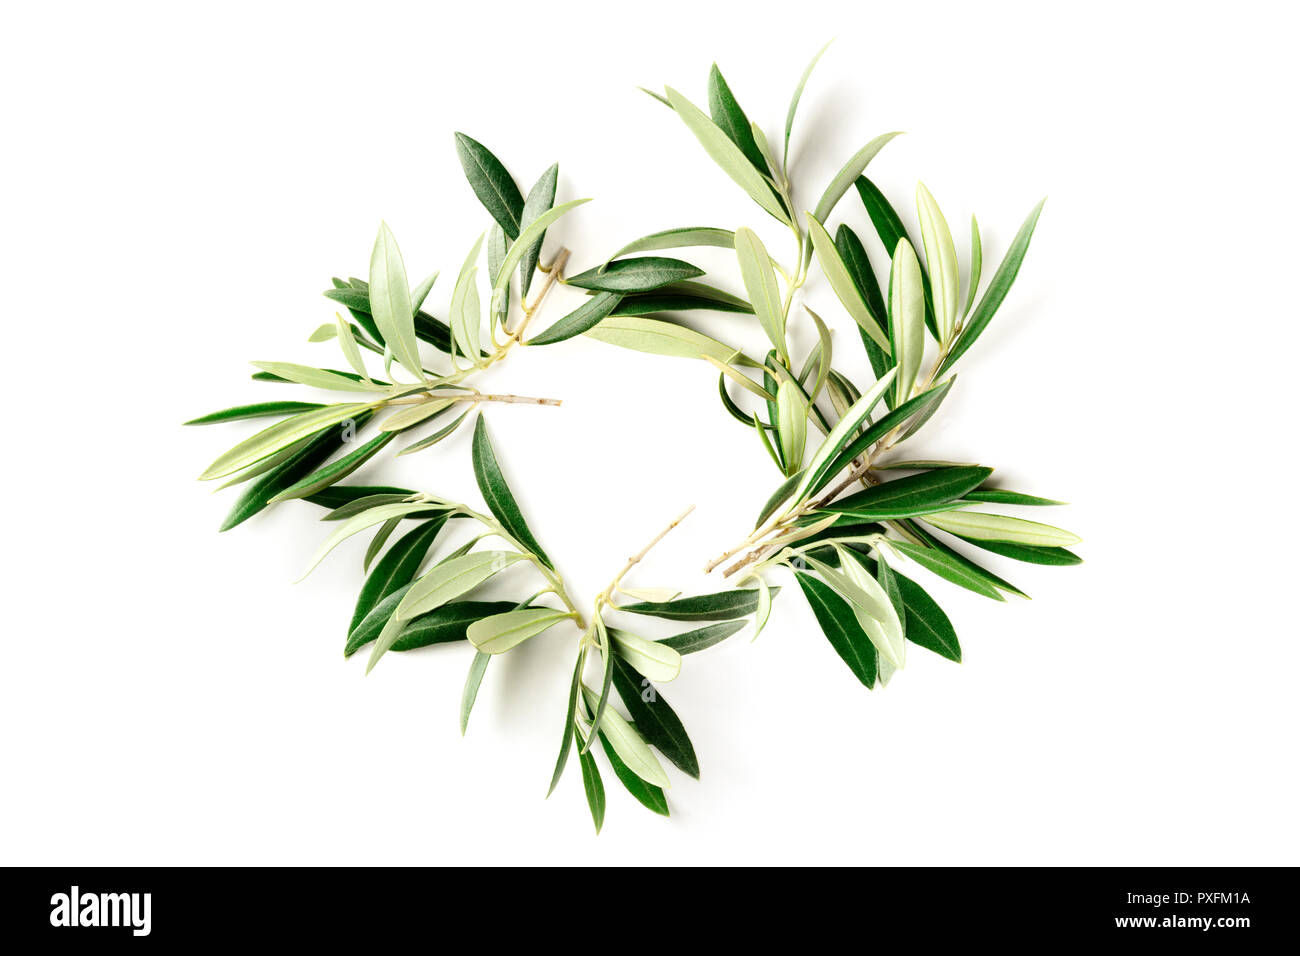 An overhead photo of a wreath made up of olive tree branches, a circular frame with copy space, shot from above on a white background - Stock Image